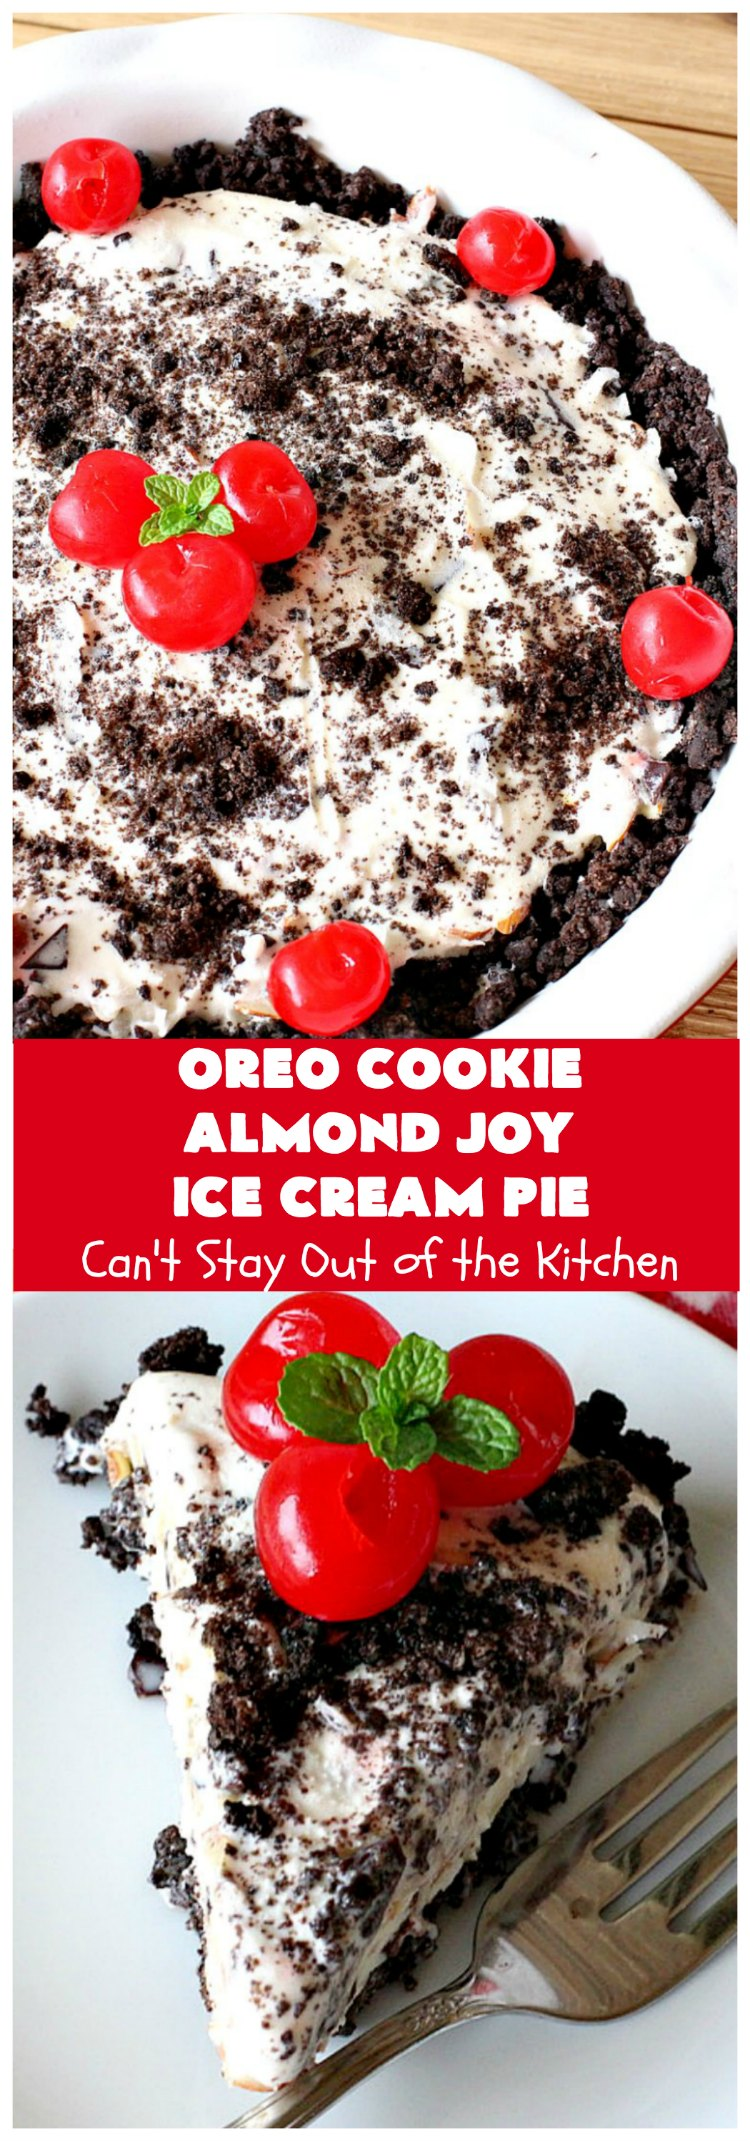 Oreo Cookie Almond Joy Ice Cream Pie | Can't Stay Out of the Kitchen | Wow your family and friends with this spectacular #IceCreamPie for #ValentinesDay! It combines the best of #Oreos with #AlmondJoyBars! Plus, it's a super easy 5-ingredient #dessert to die for! #Holiday #Pie #HolidayDessert #ChocolateDessert #OreoDessert #AlmondJoyDessert #ChocolatePie #OreoPie #IceCream #AlmondJoyPie #OreoCookieAlmondJoyIceCreamPie